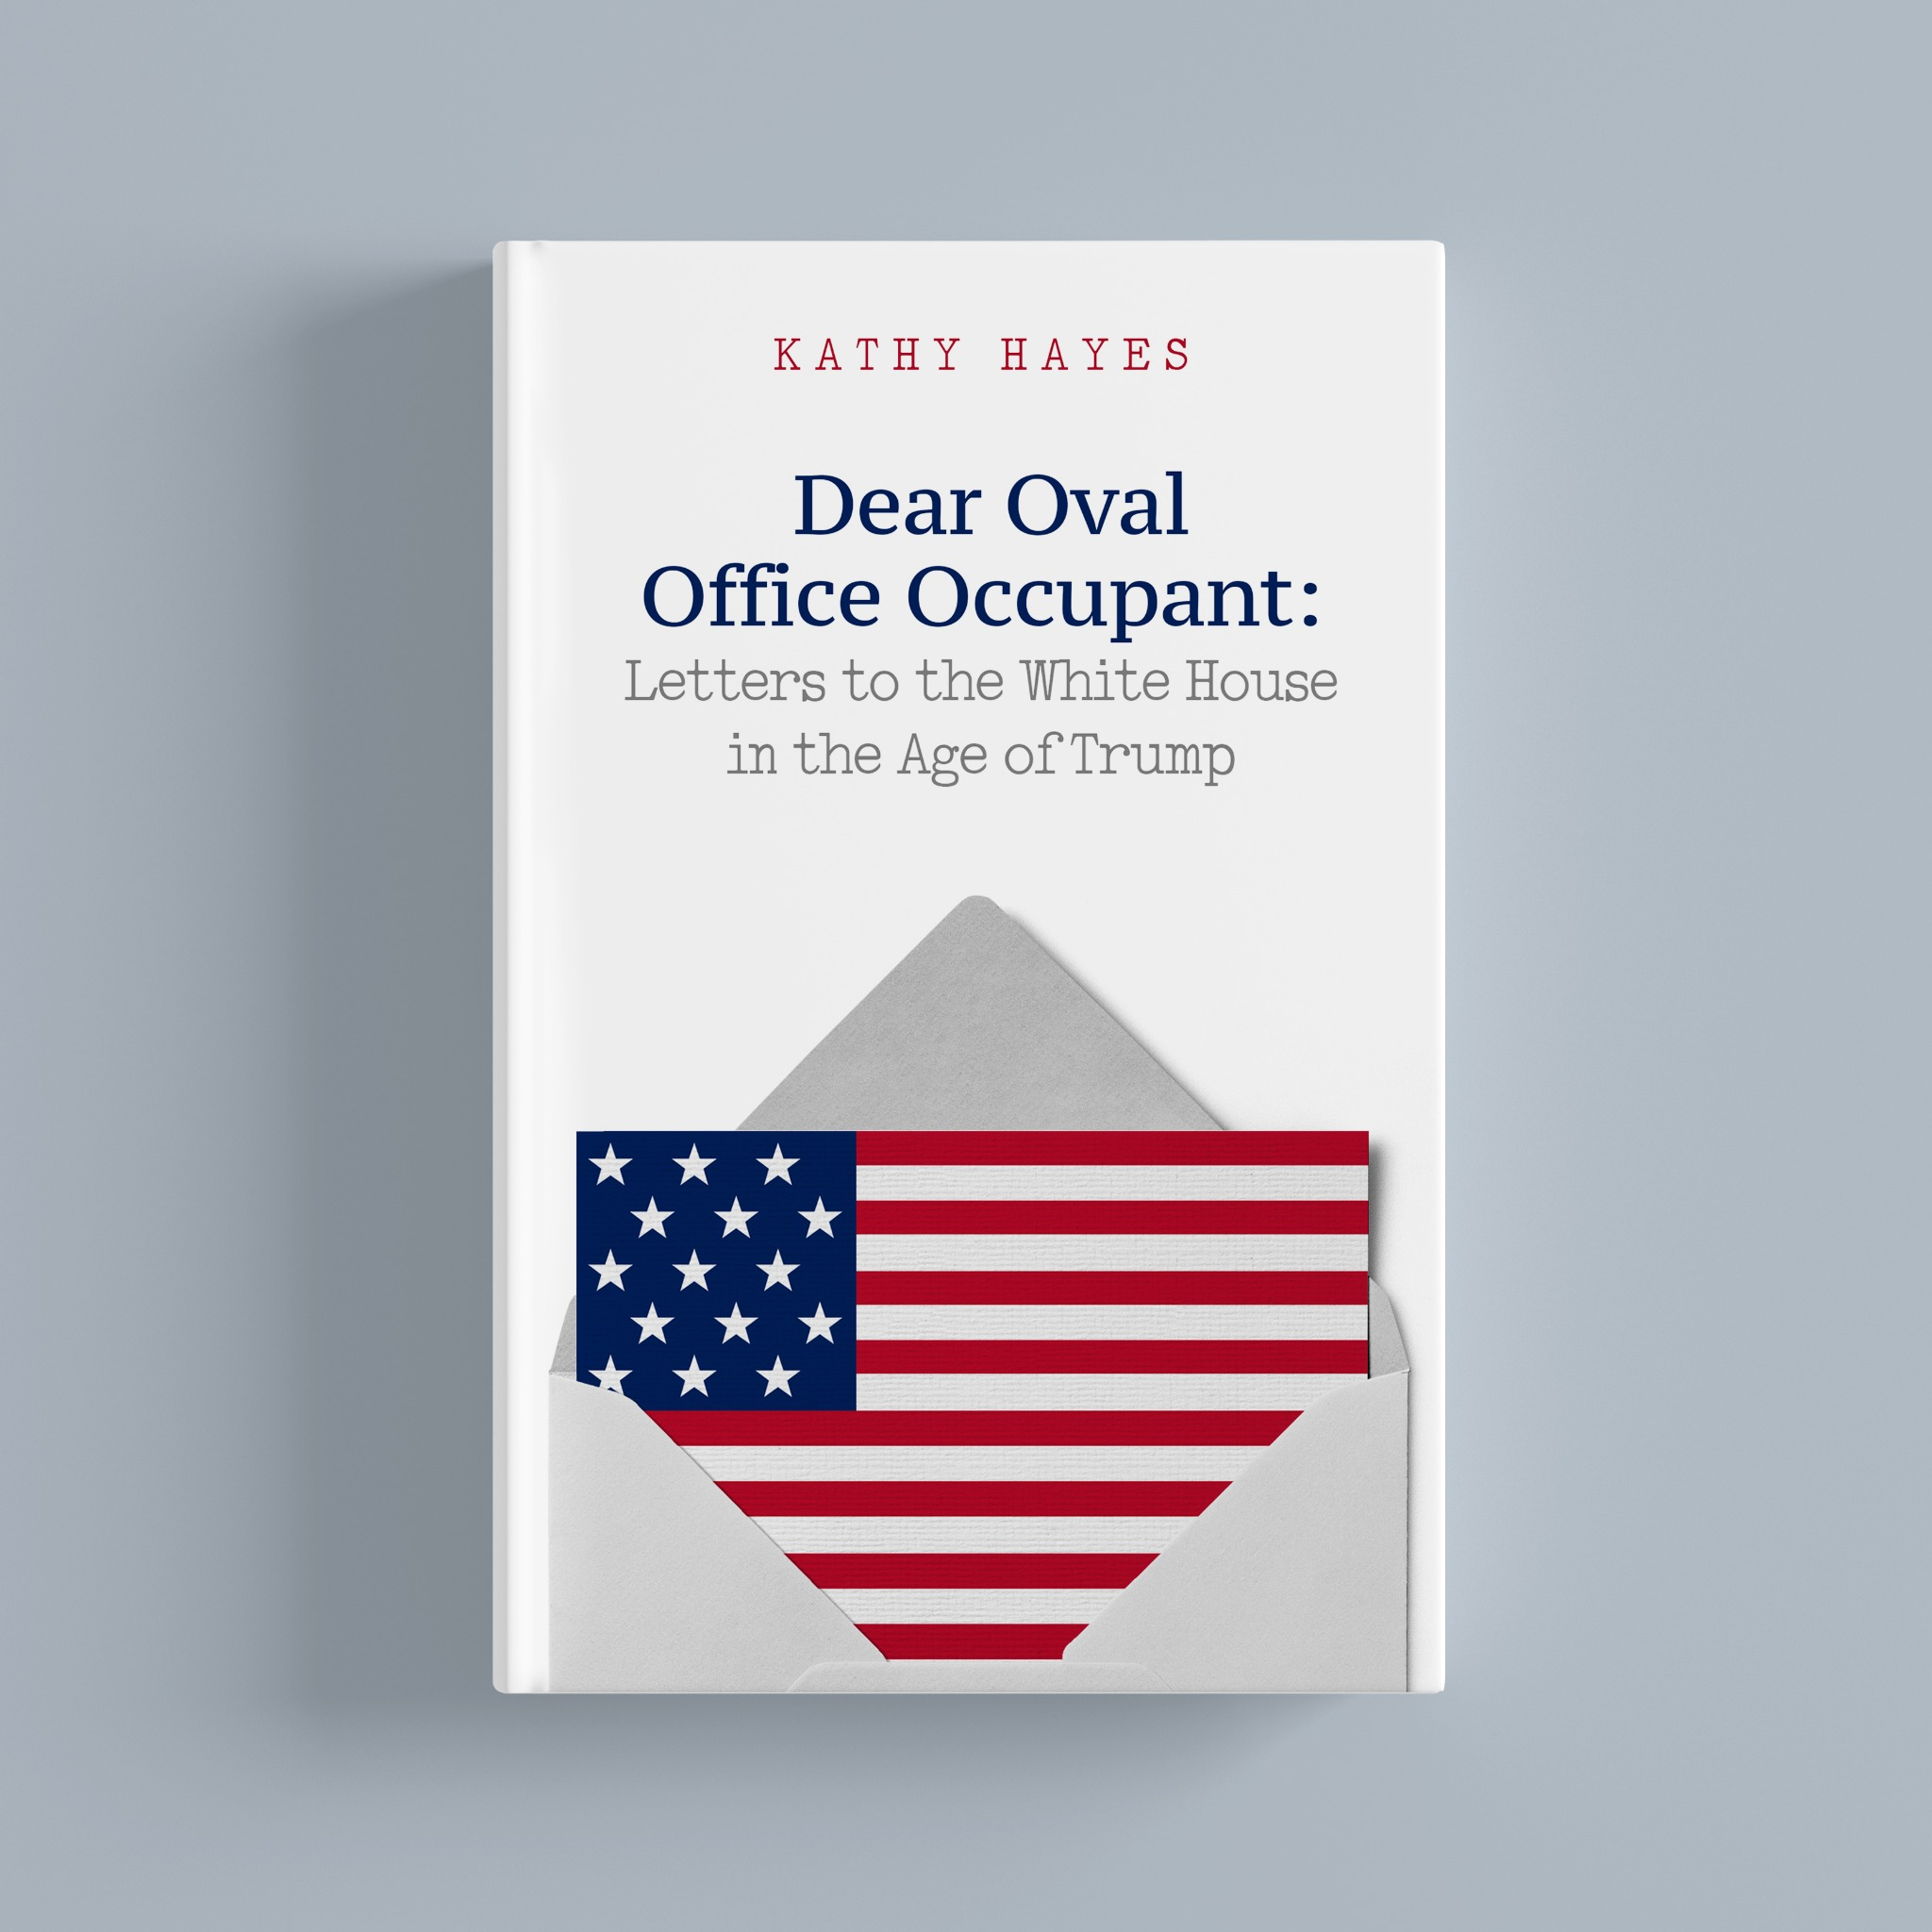 Dear Oval Office Occupant: Letters to the White House in the Age of Trump (Audiobook)